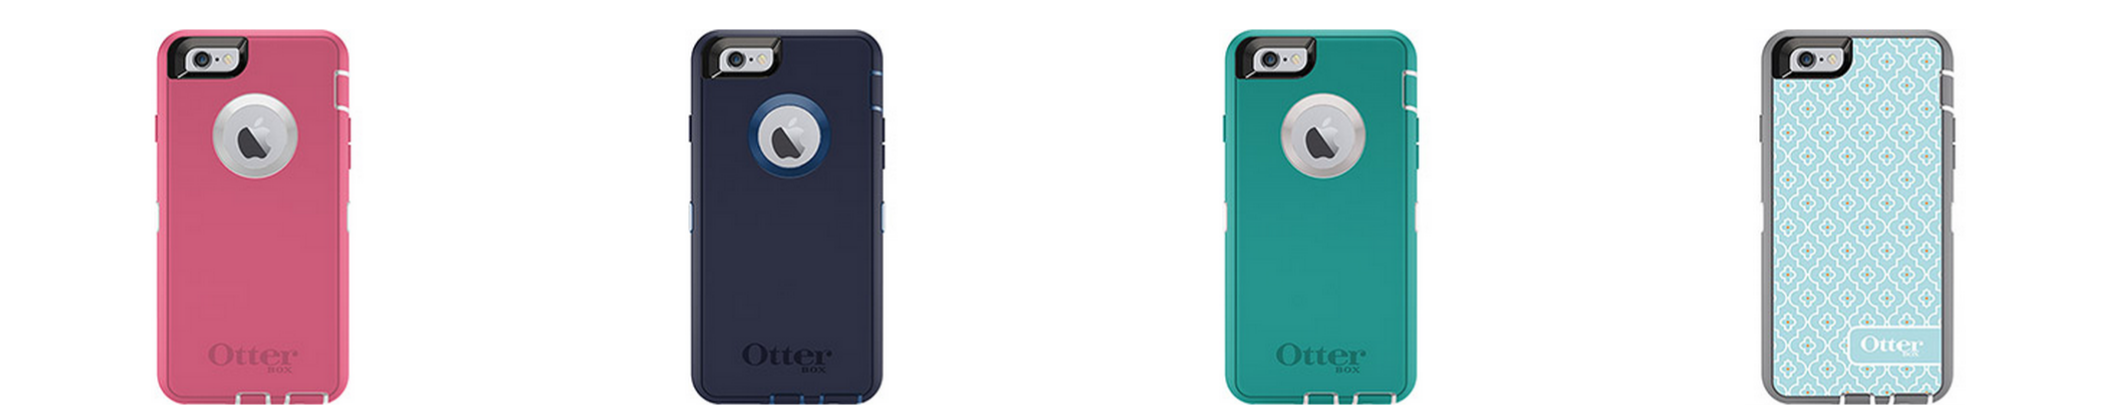 Otterbox coupon code october 2018